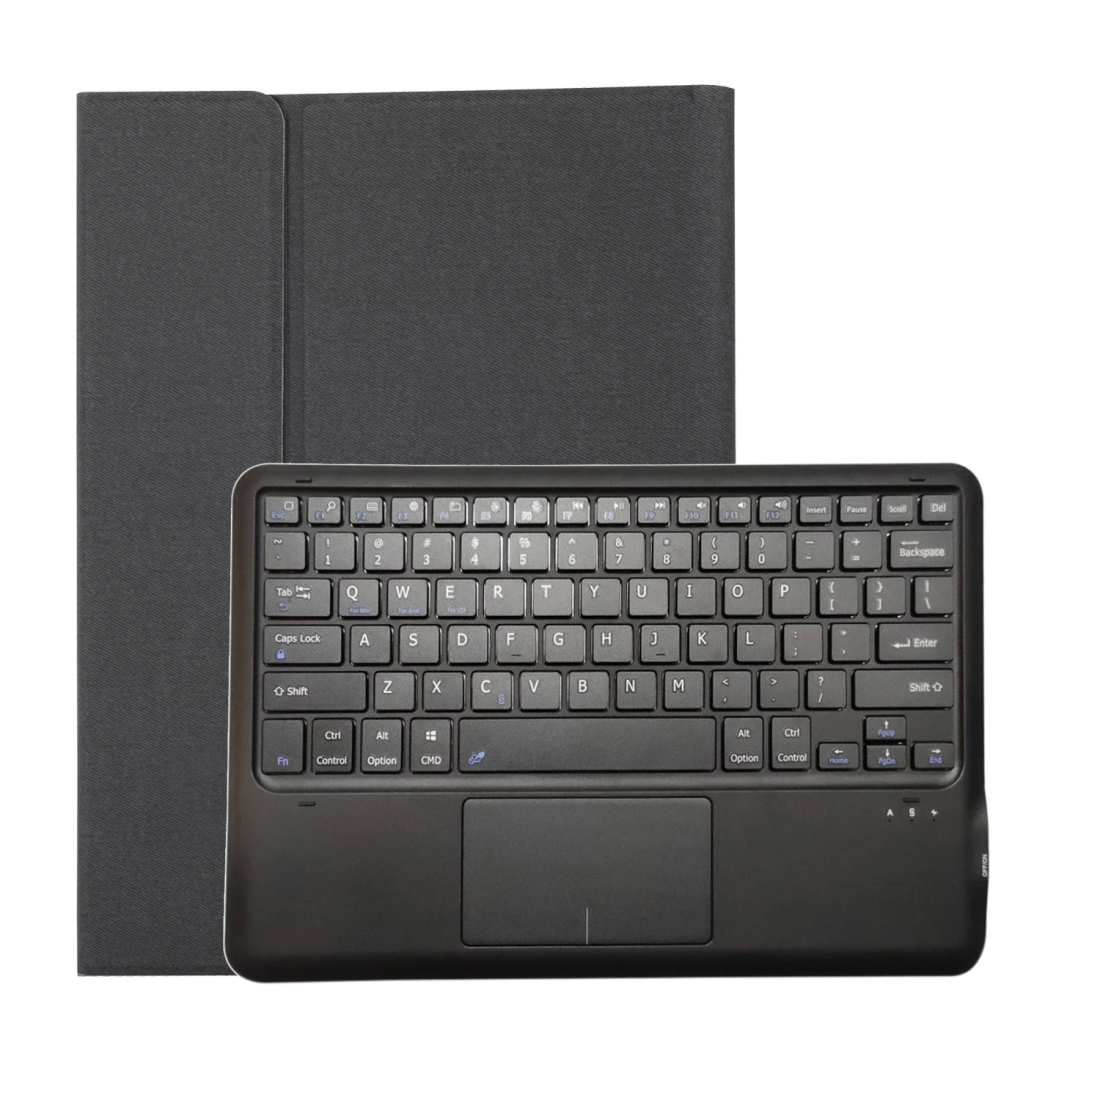 iPad Pro 12.9 Case With Keyboard (2018) (2020) With Leather Case & Backlit Keyboard (Black)